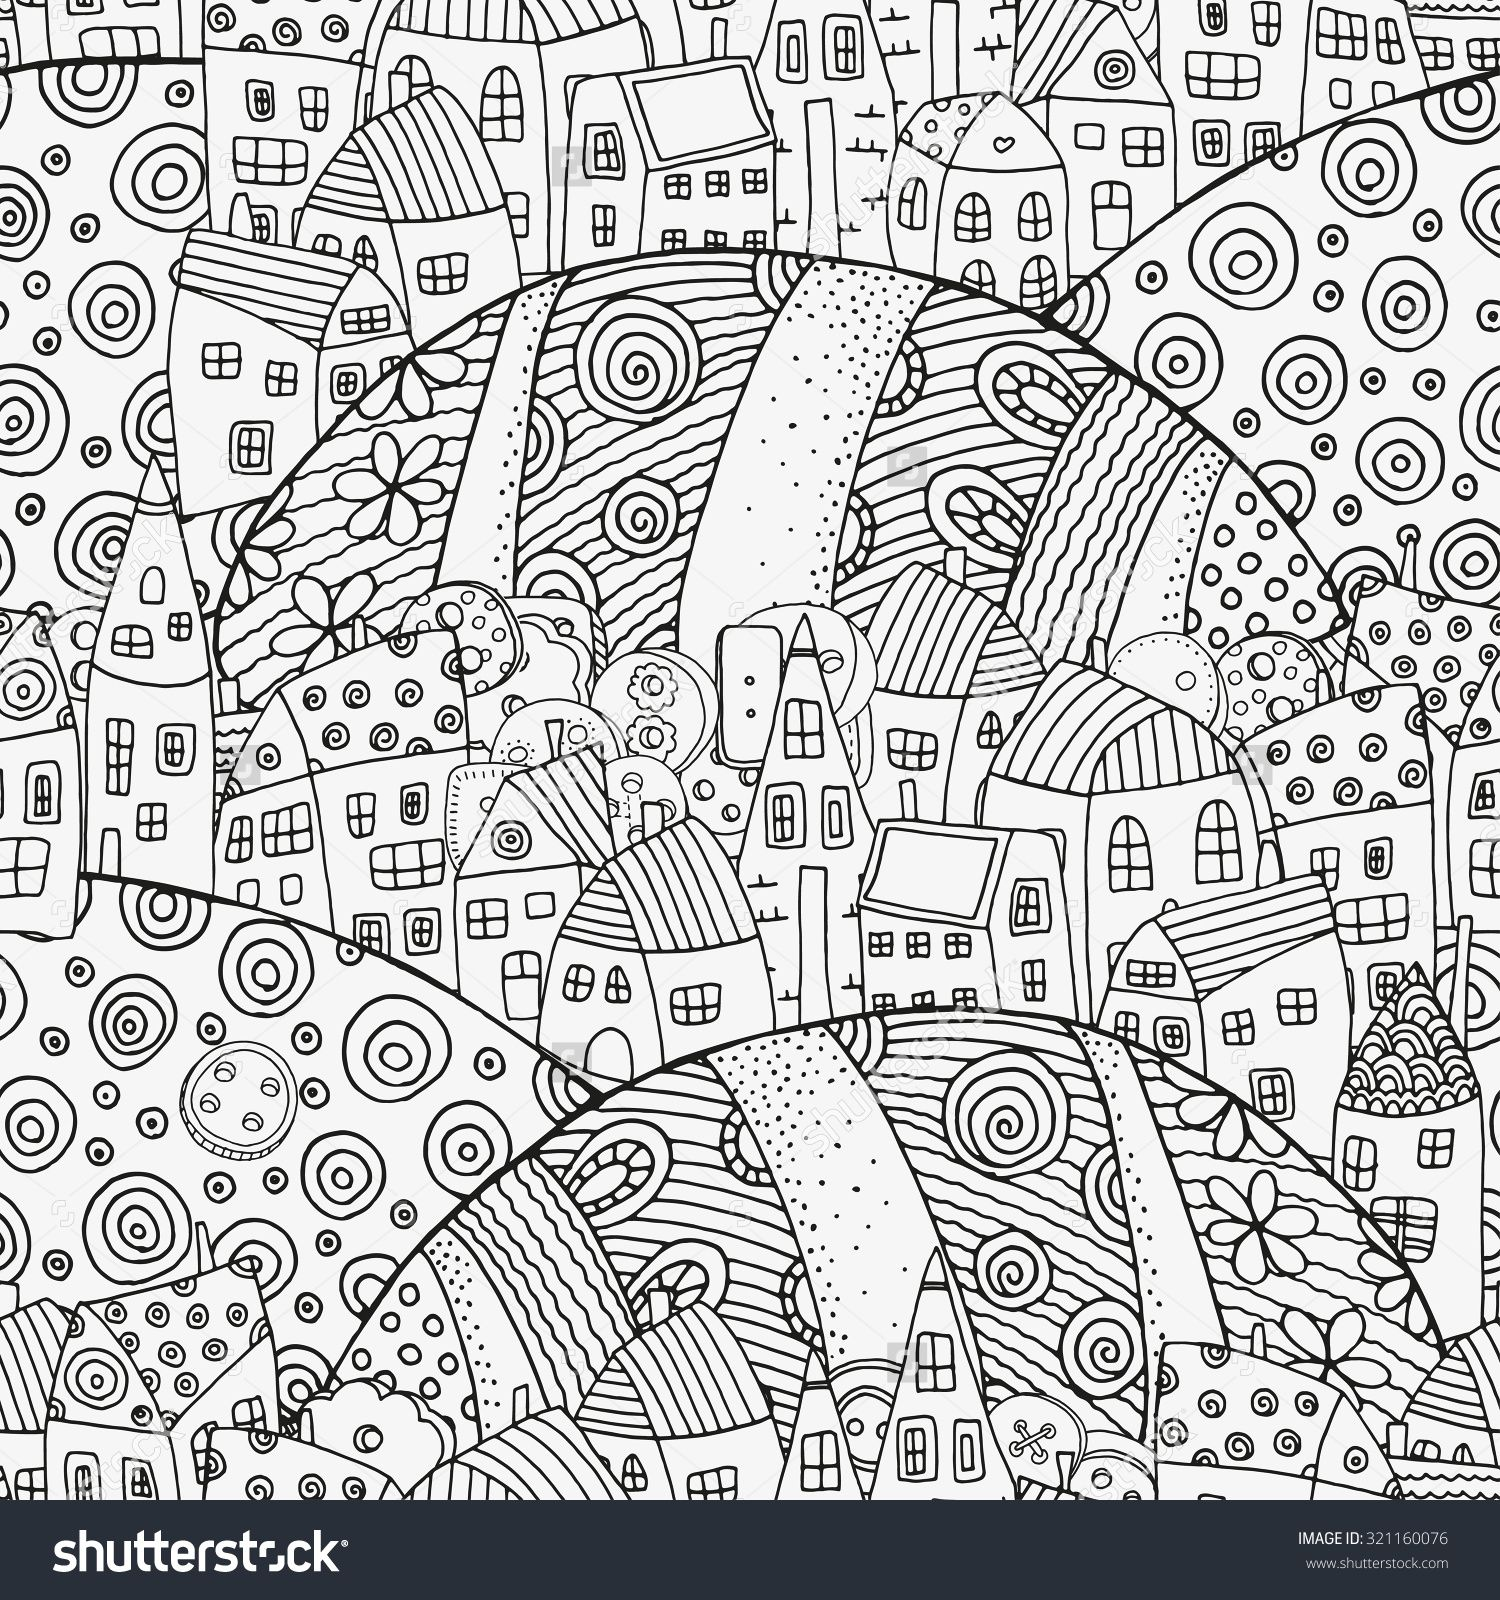 Neighborhood | Coloring Therapy | Pinterest | Colorear, Dibujar y Letras